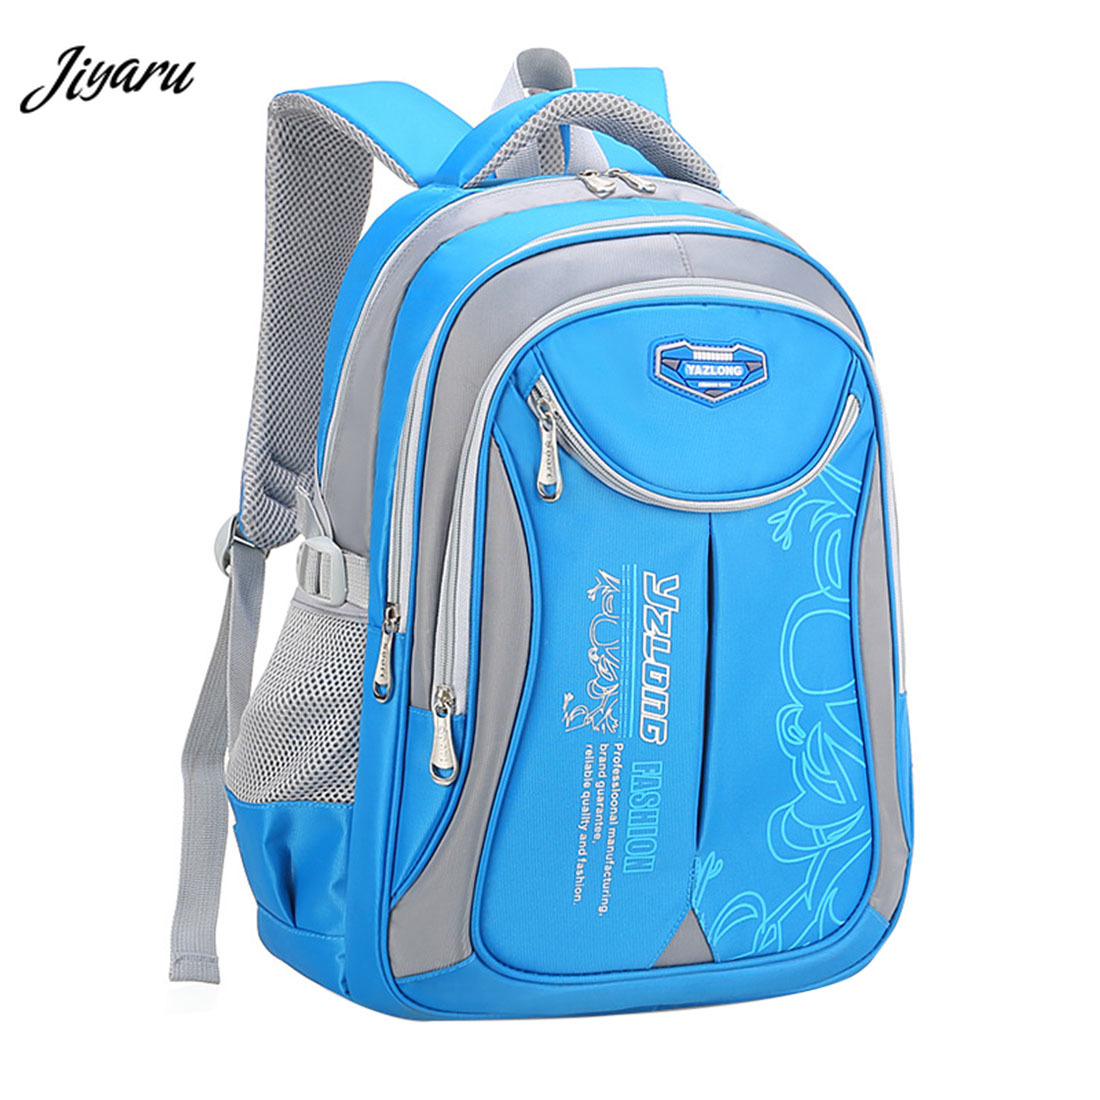 Hot Sale Backpack Schoolbags Children School Bags for Teenagers Boys Girls Big Capacity Waterproof Satchel Kids Book Bag Mochila